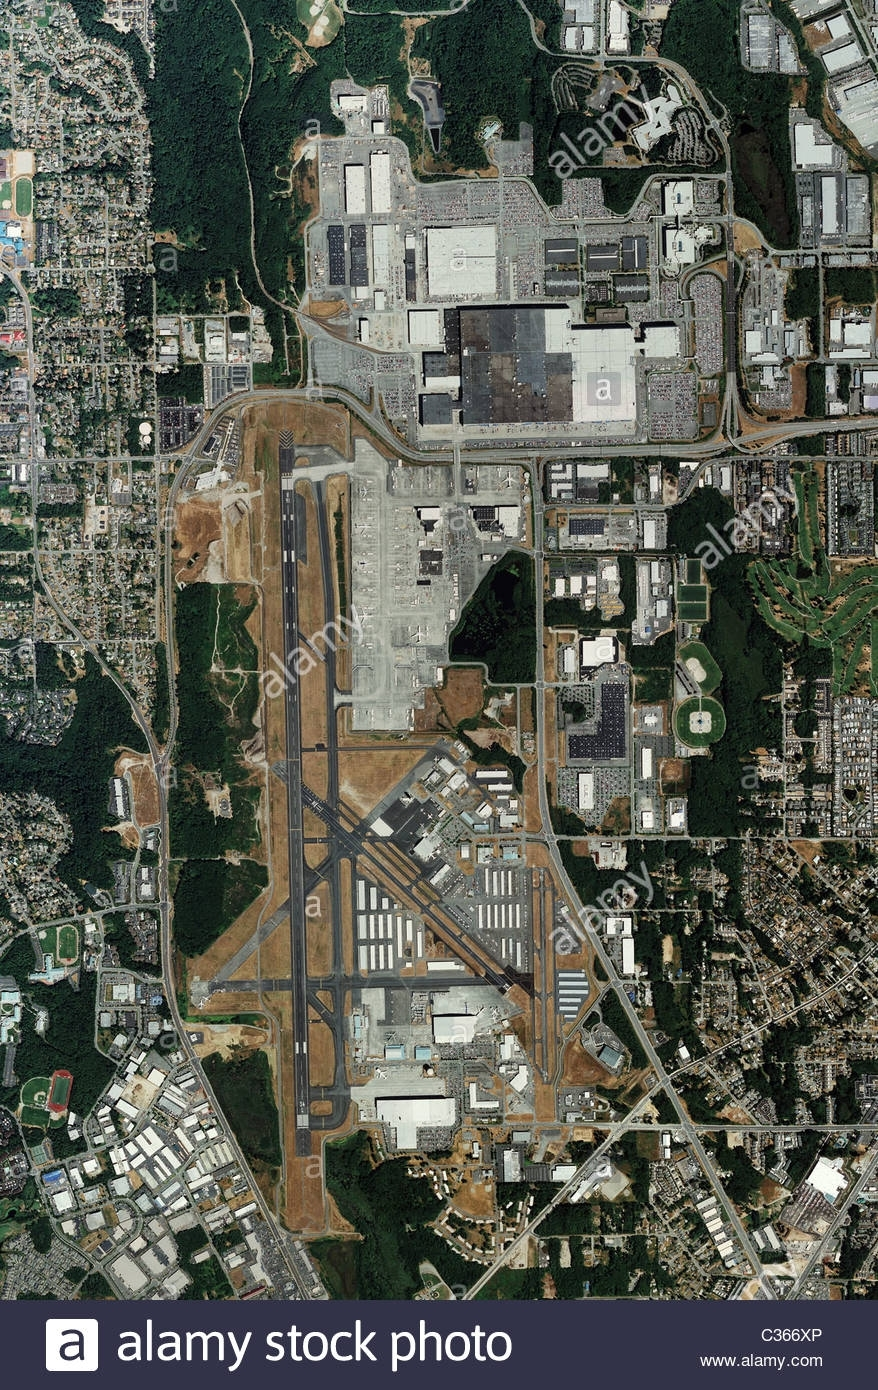 Aerial Map View Boeing Everett Factory And Paine Field within Boeing Everett Facility Map